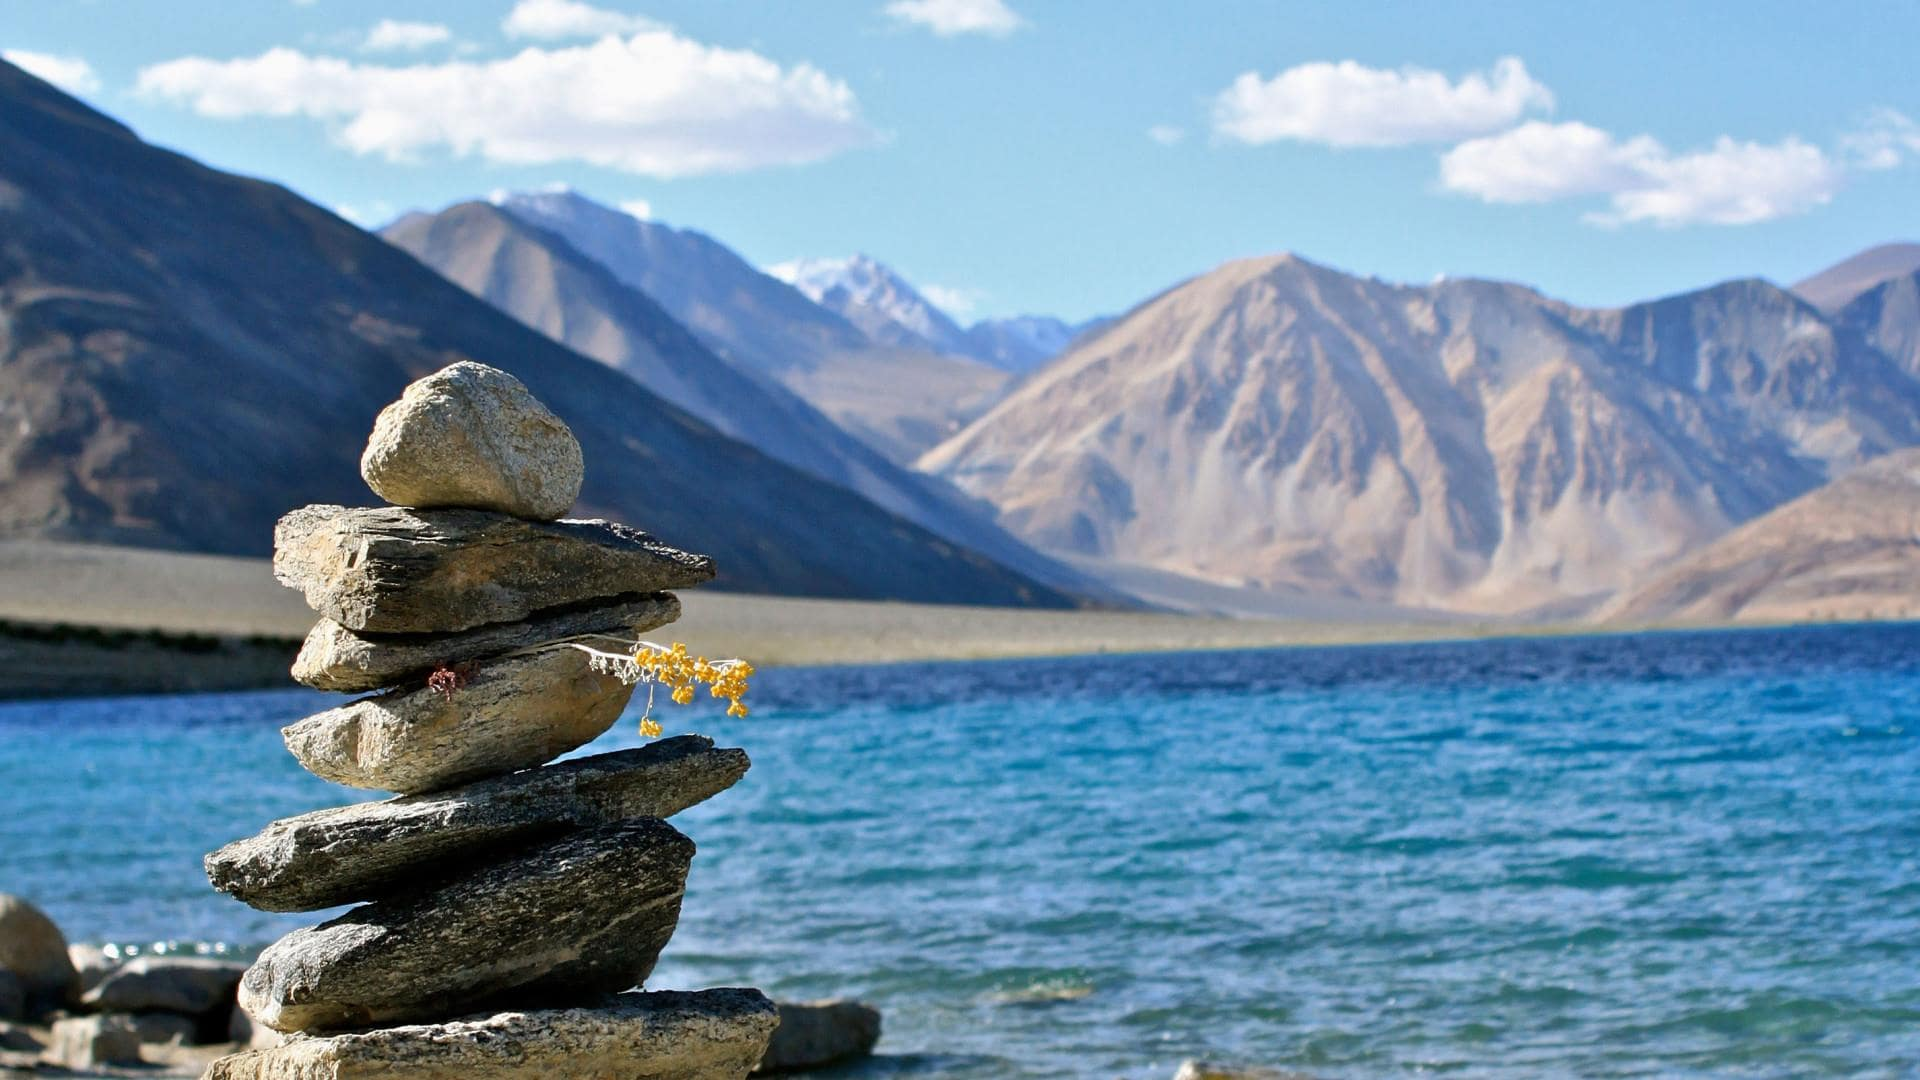 Must Visit Places in India - Ladakh, Jammu and Kashmir